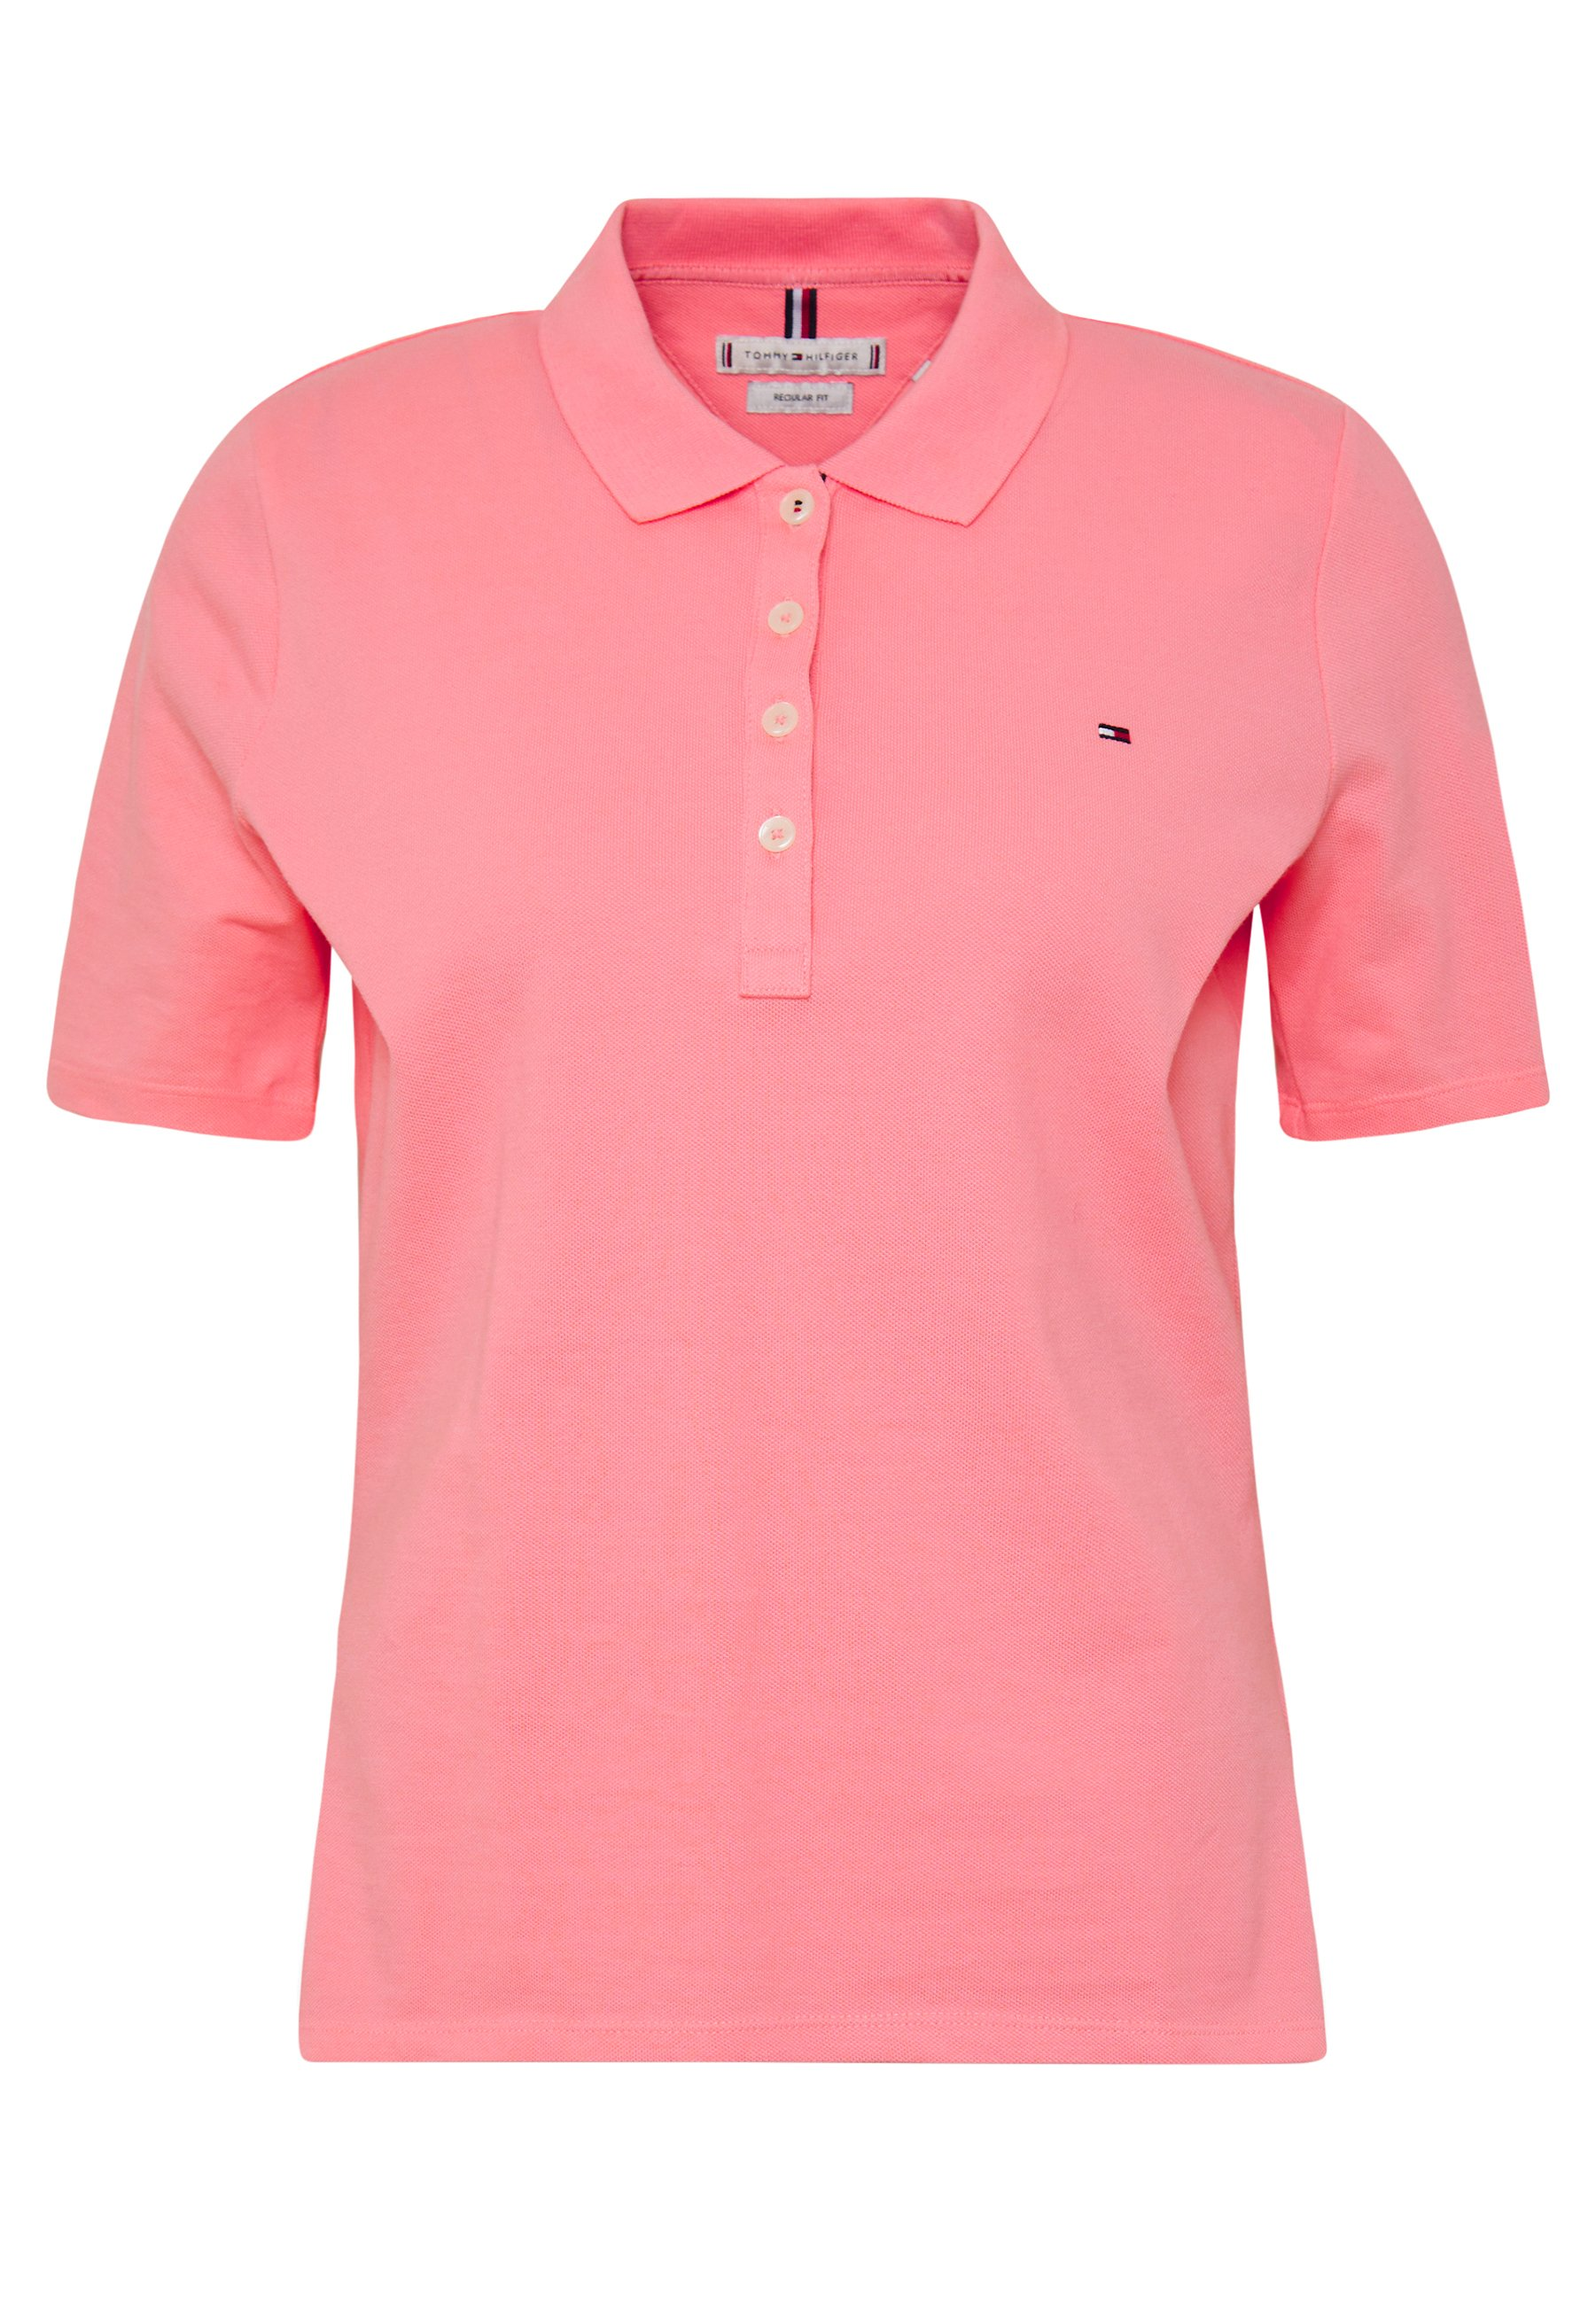 TH ESSENTIAL POLO Poloshirt pink grapefruit